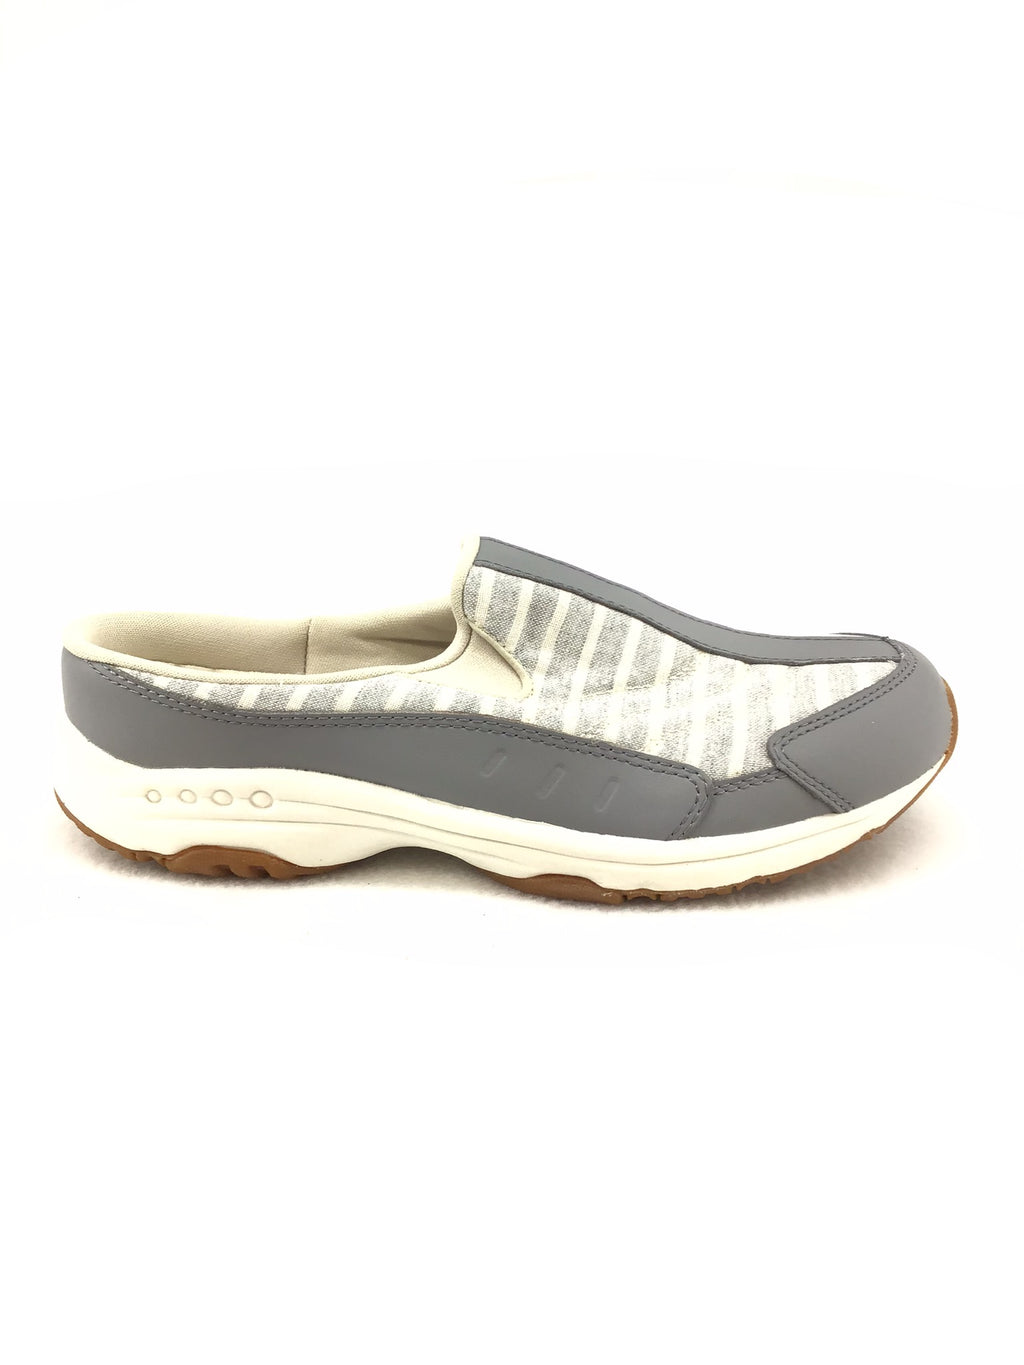 Easy Spirit Setraveltimes318 Shoes Size 9.5N